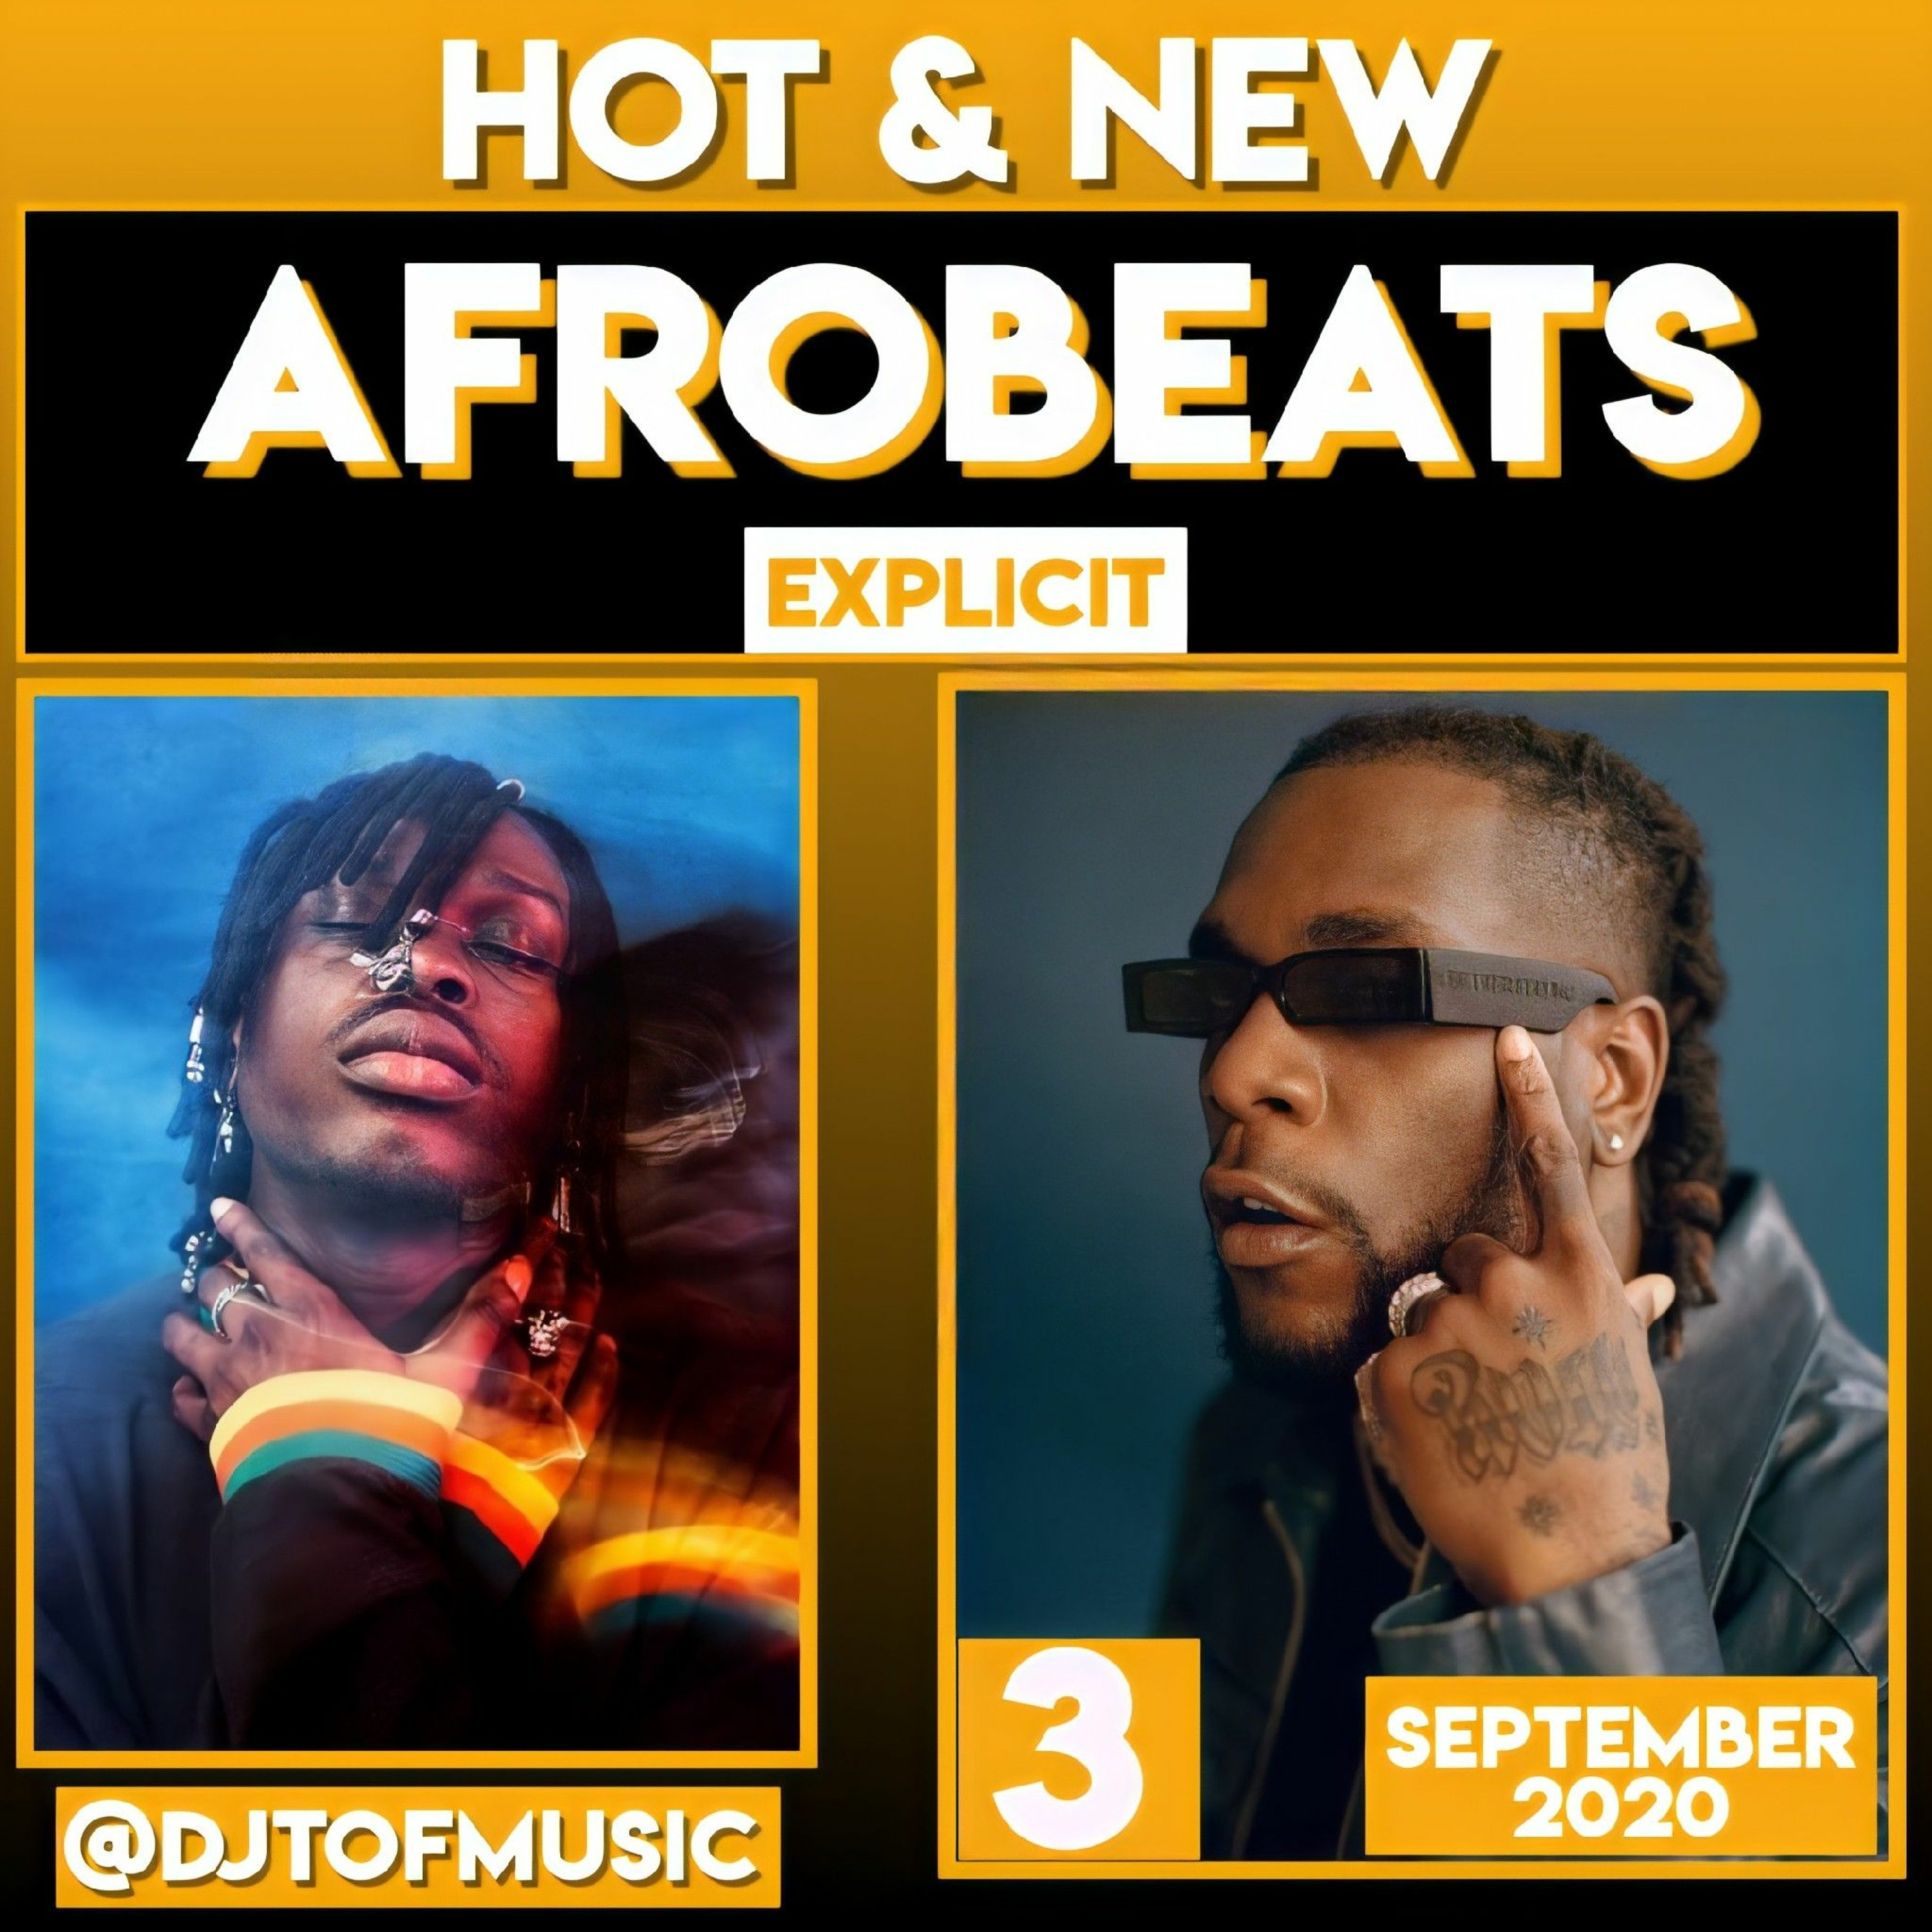 HOT AND NEW - SEPTEMBER 2020 AFROBEATS UPDATE